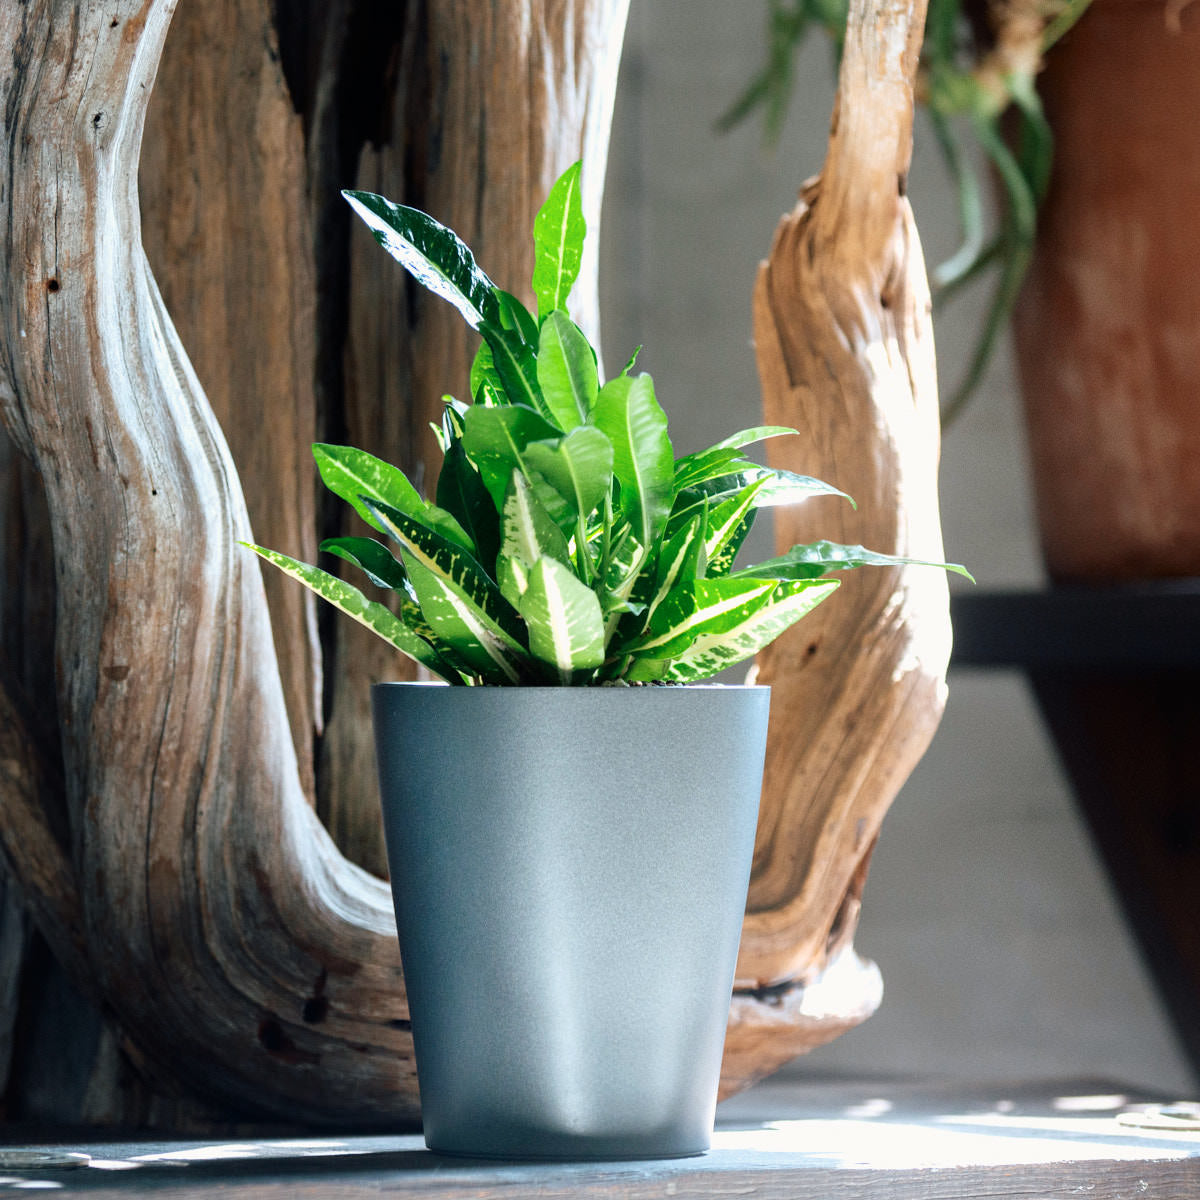 Yellow Croton plant potted in Lechuza Lechuza Deltini charcoal metallic planter - Shop Online - My City Plants